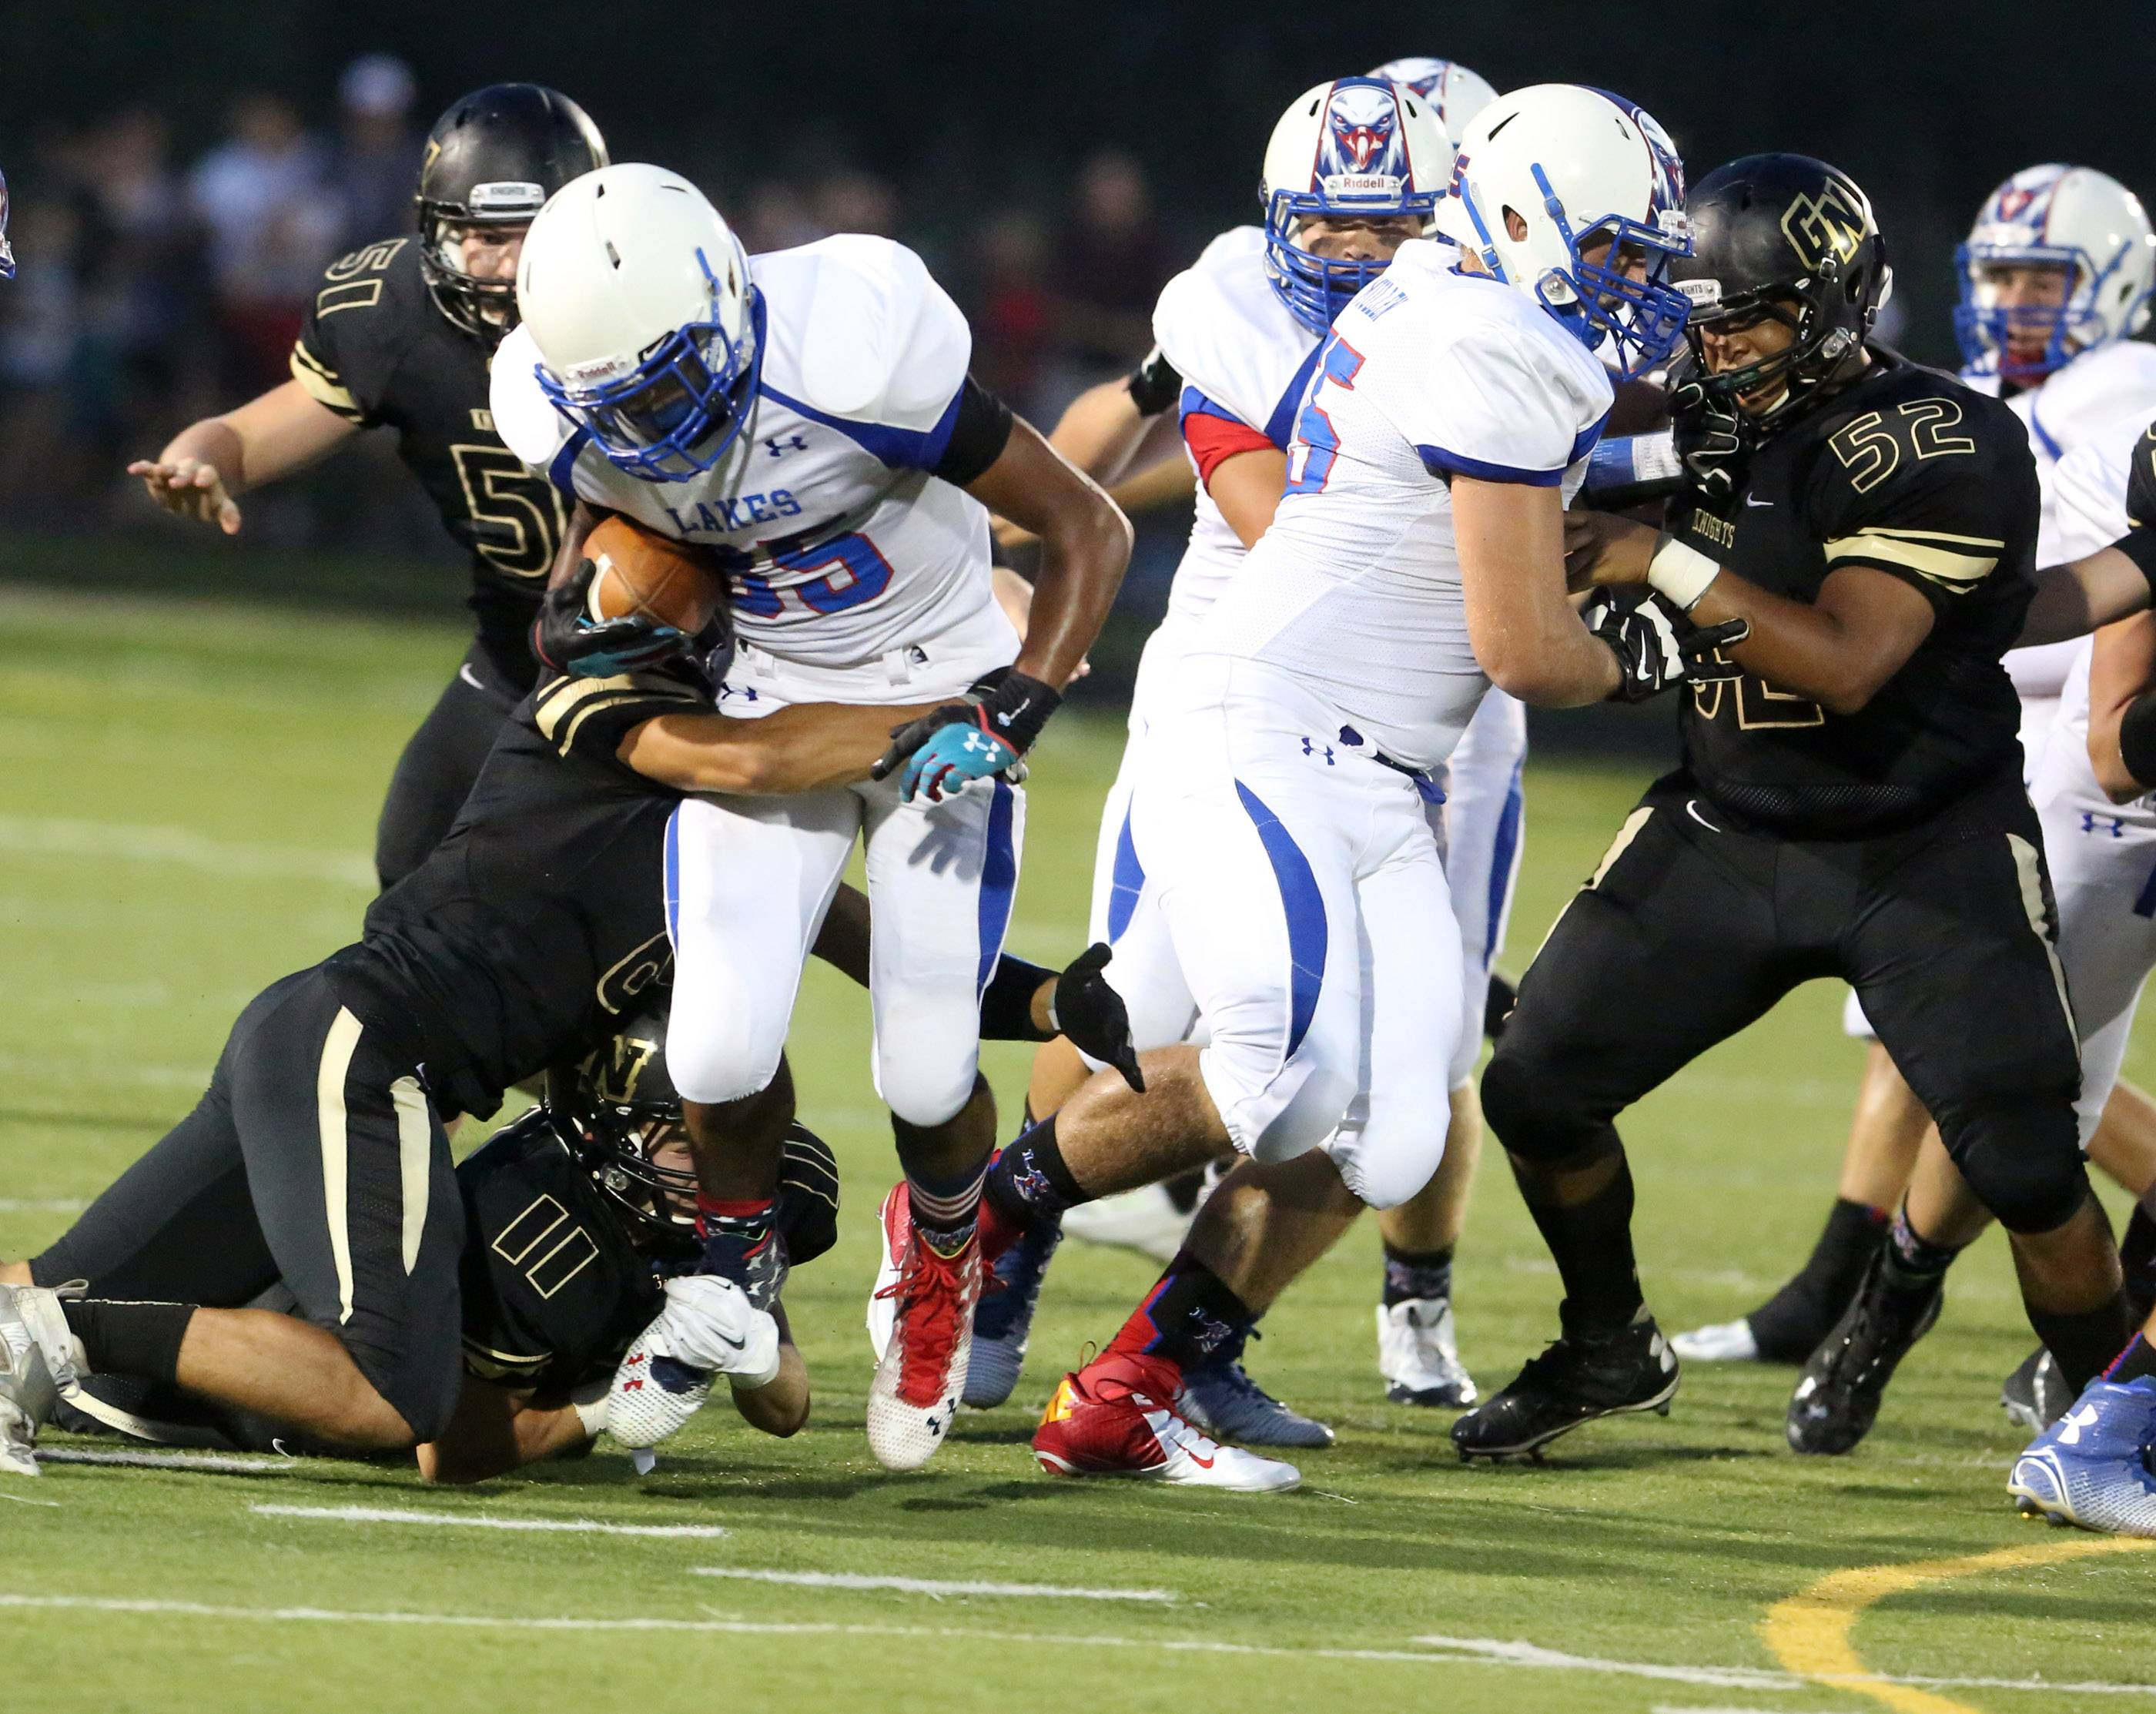 Lakes running back Devyn Cedzidlo is pulled down by Grayslake defenders.